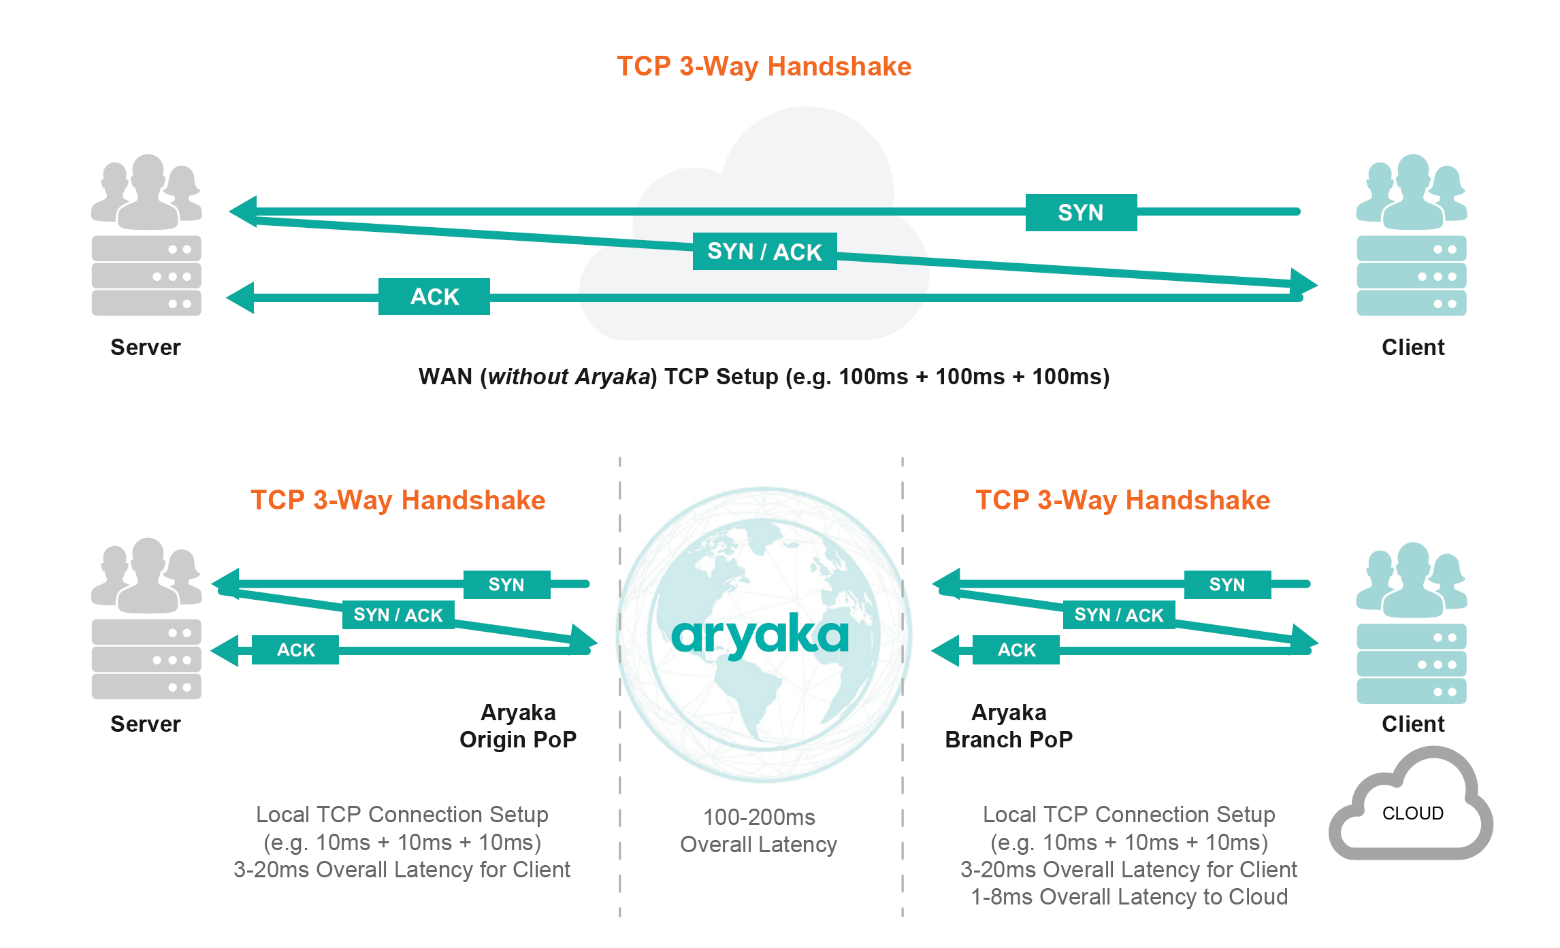 TCP handshake with and without Aryaka